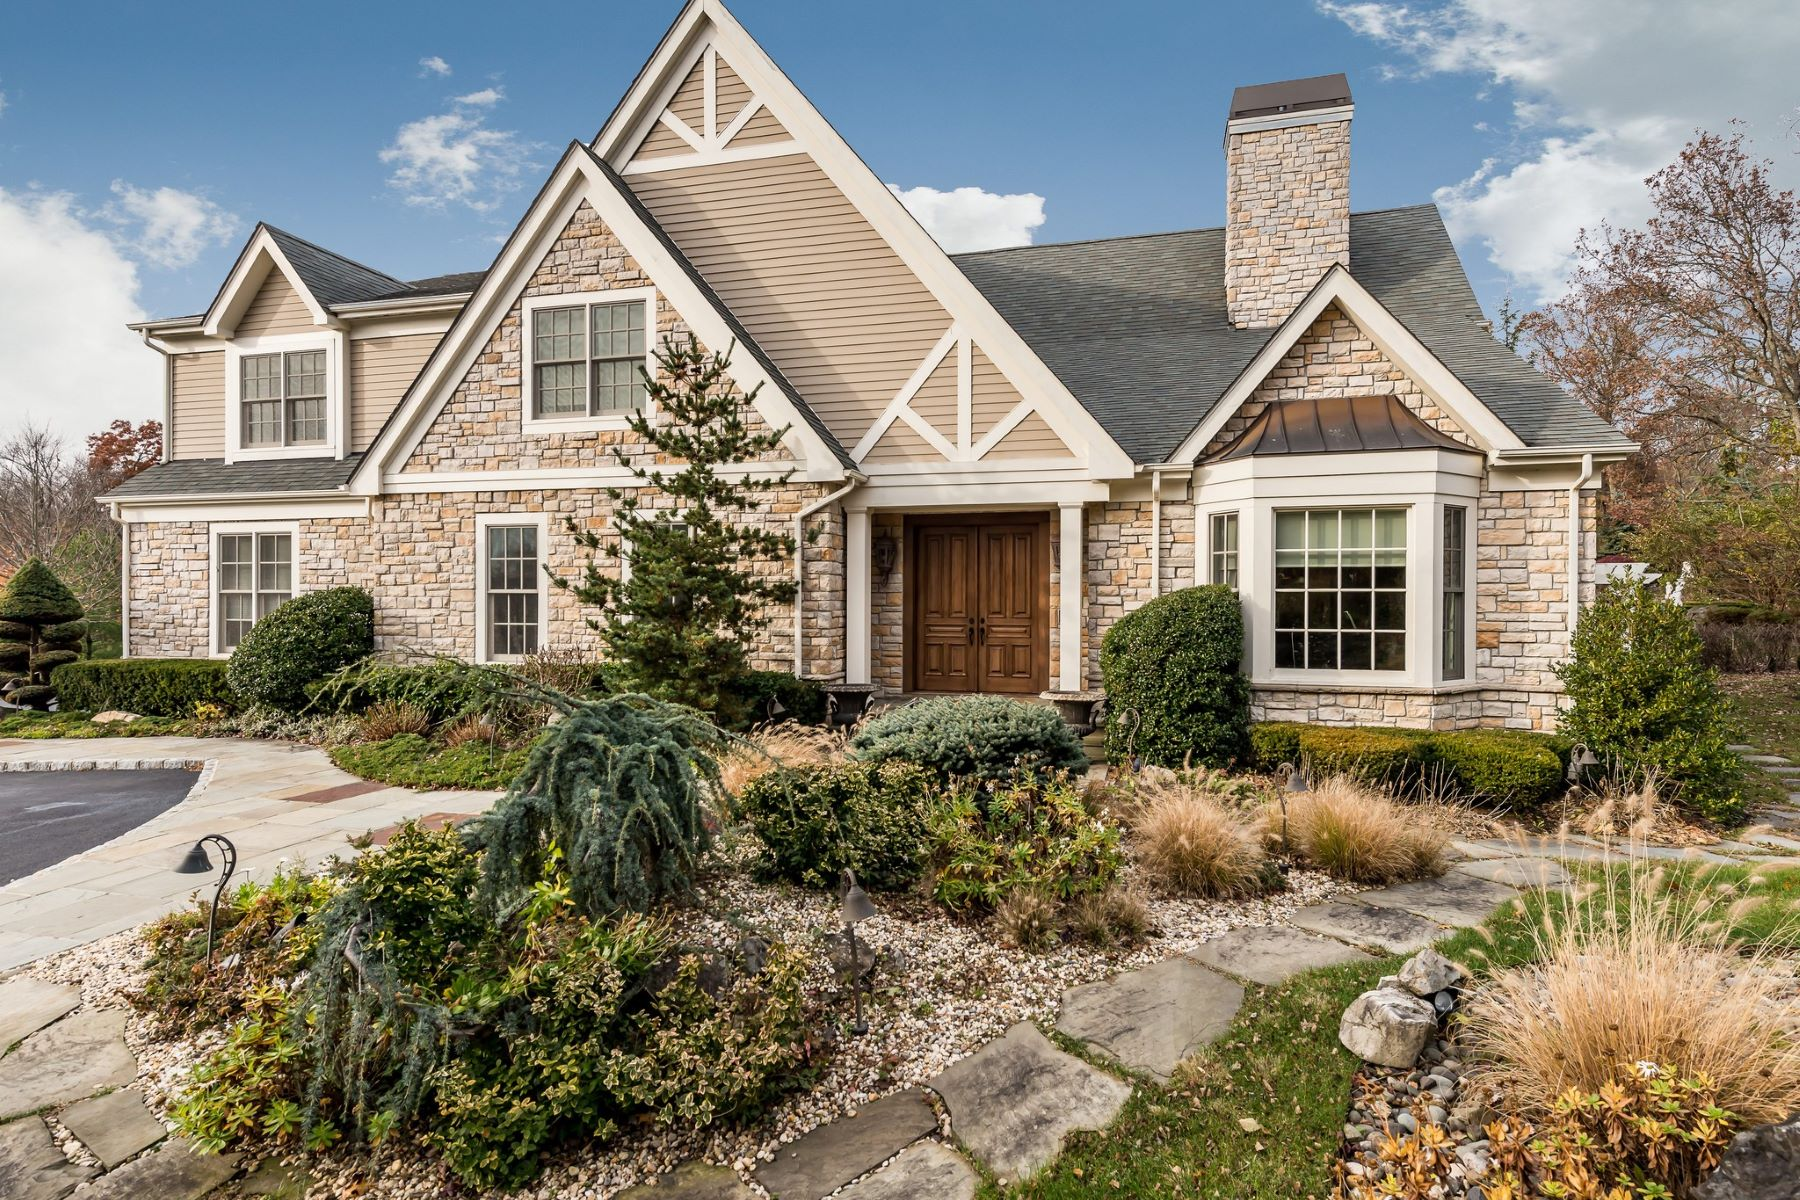 Single Family Homes for Sale at Muttontown 2 Kingwood Court Muttontown, New York 11791 United States